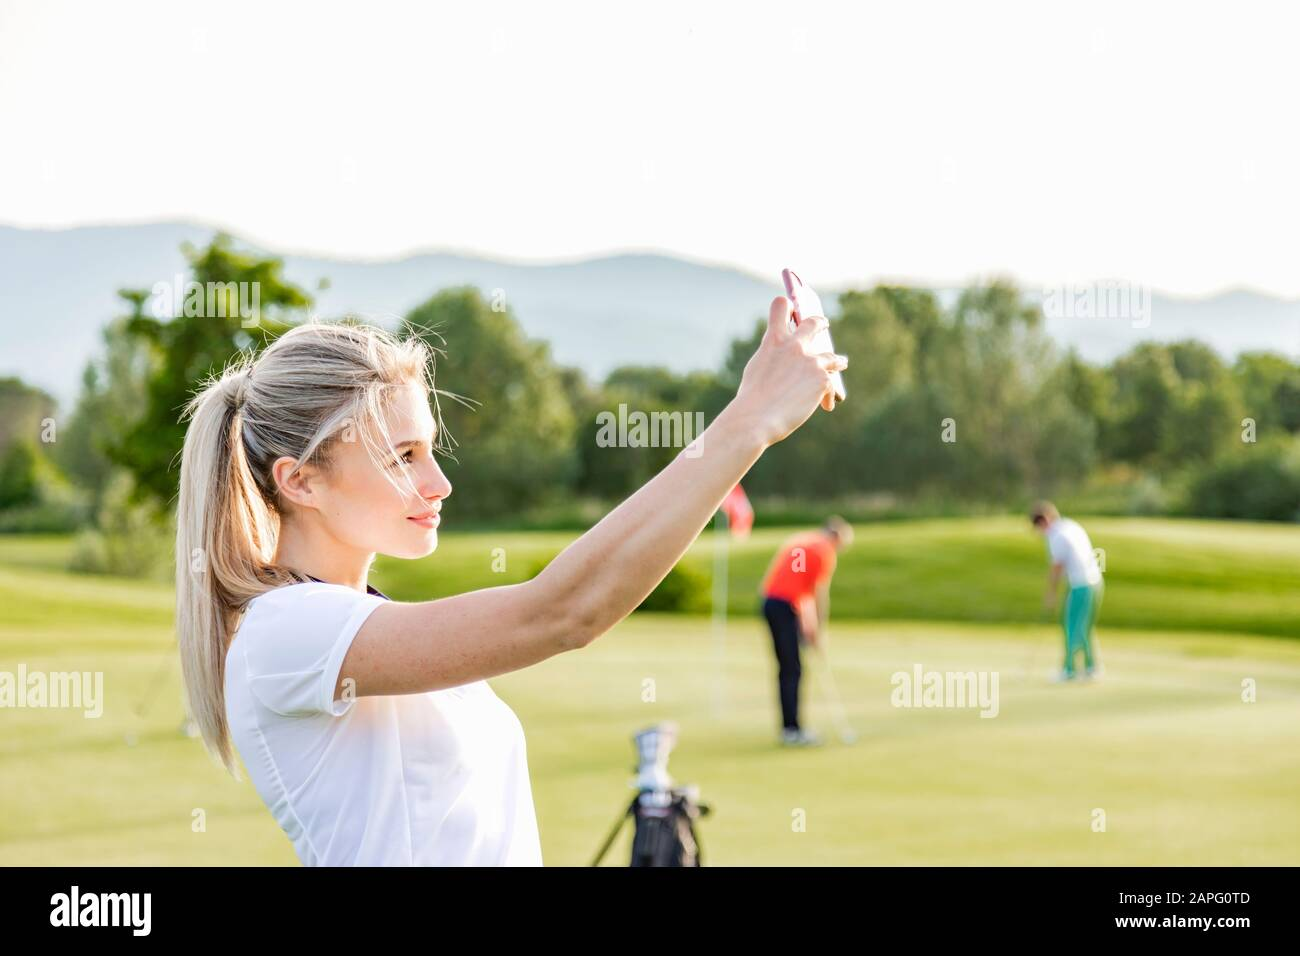 Woman Taking Selfie On Golf Course Friends Playing Golf In Background Stock Photo Alamy